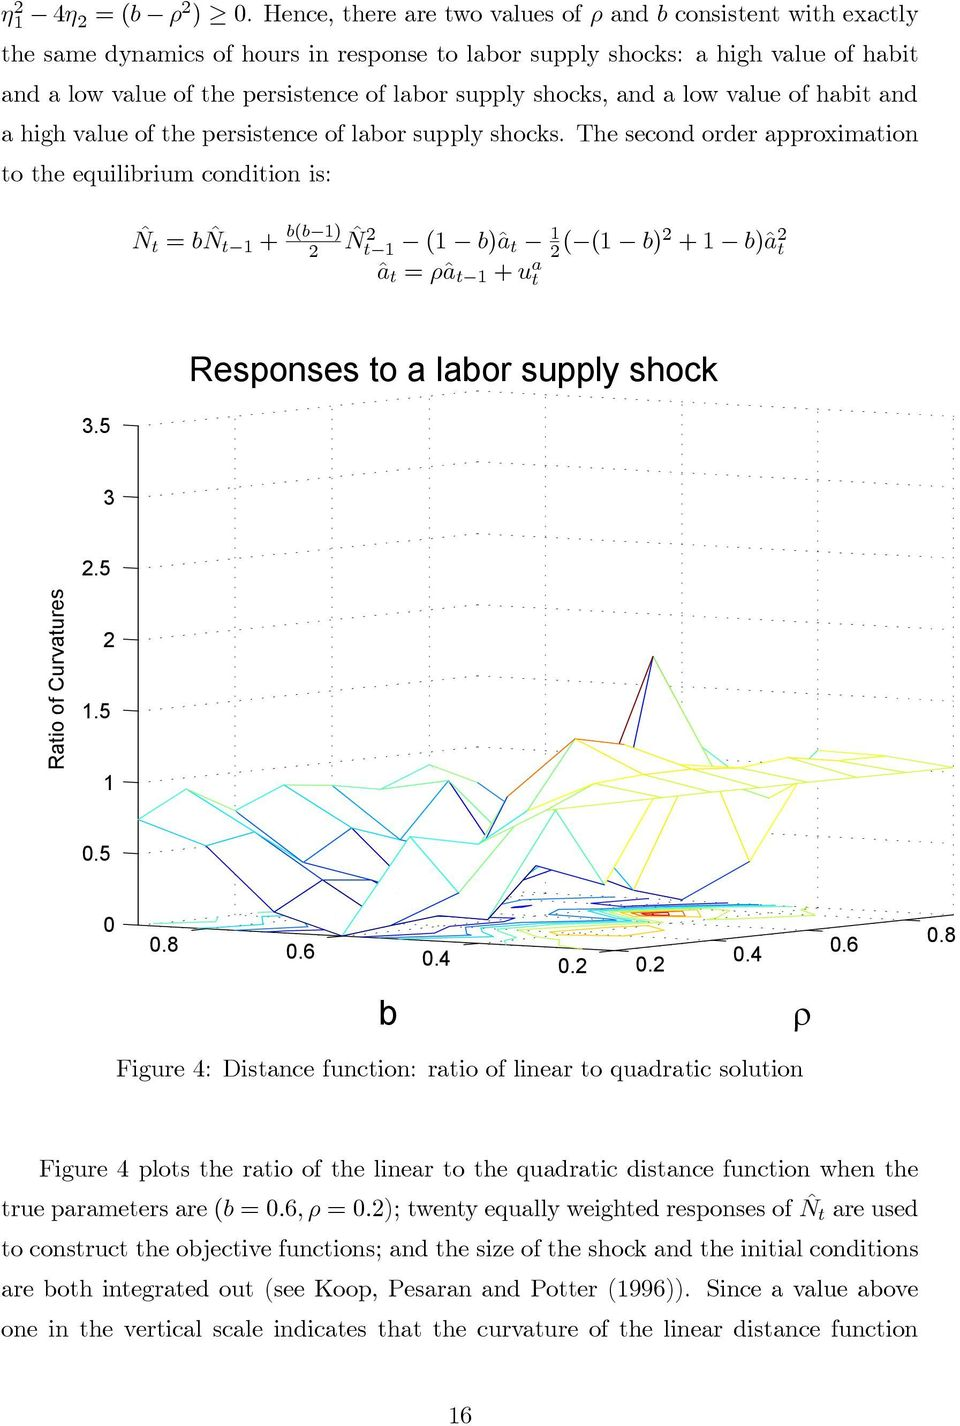 shocks, and a low value of habit and a high value of the persistence of labor supply shocks.